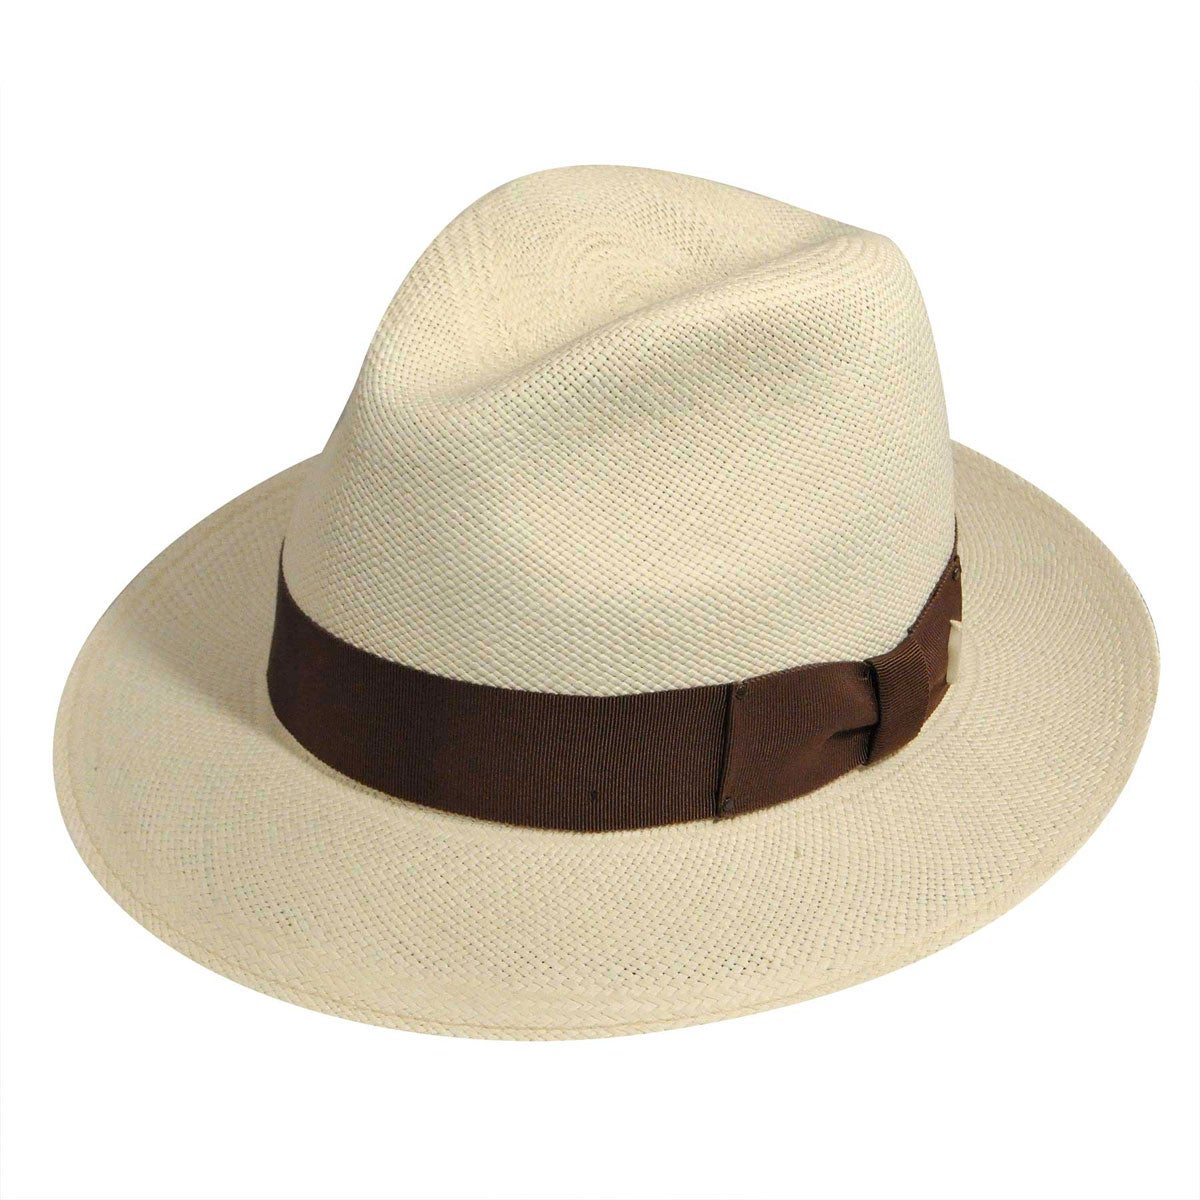 Mens 1920s Style Hats and Caps Thurman Panama $150.00 AT vintagedancer.com